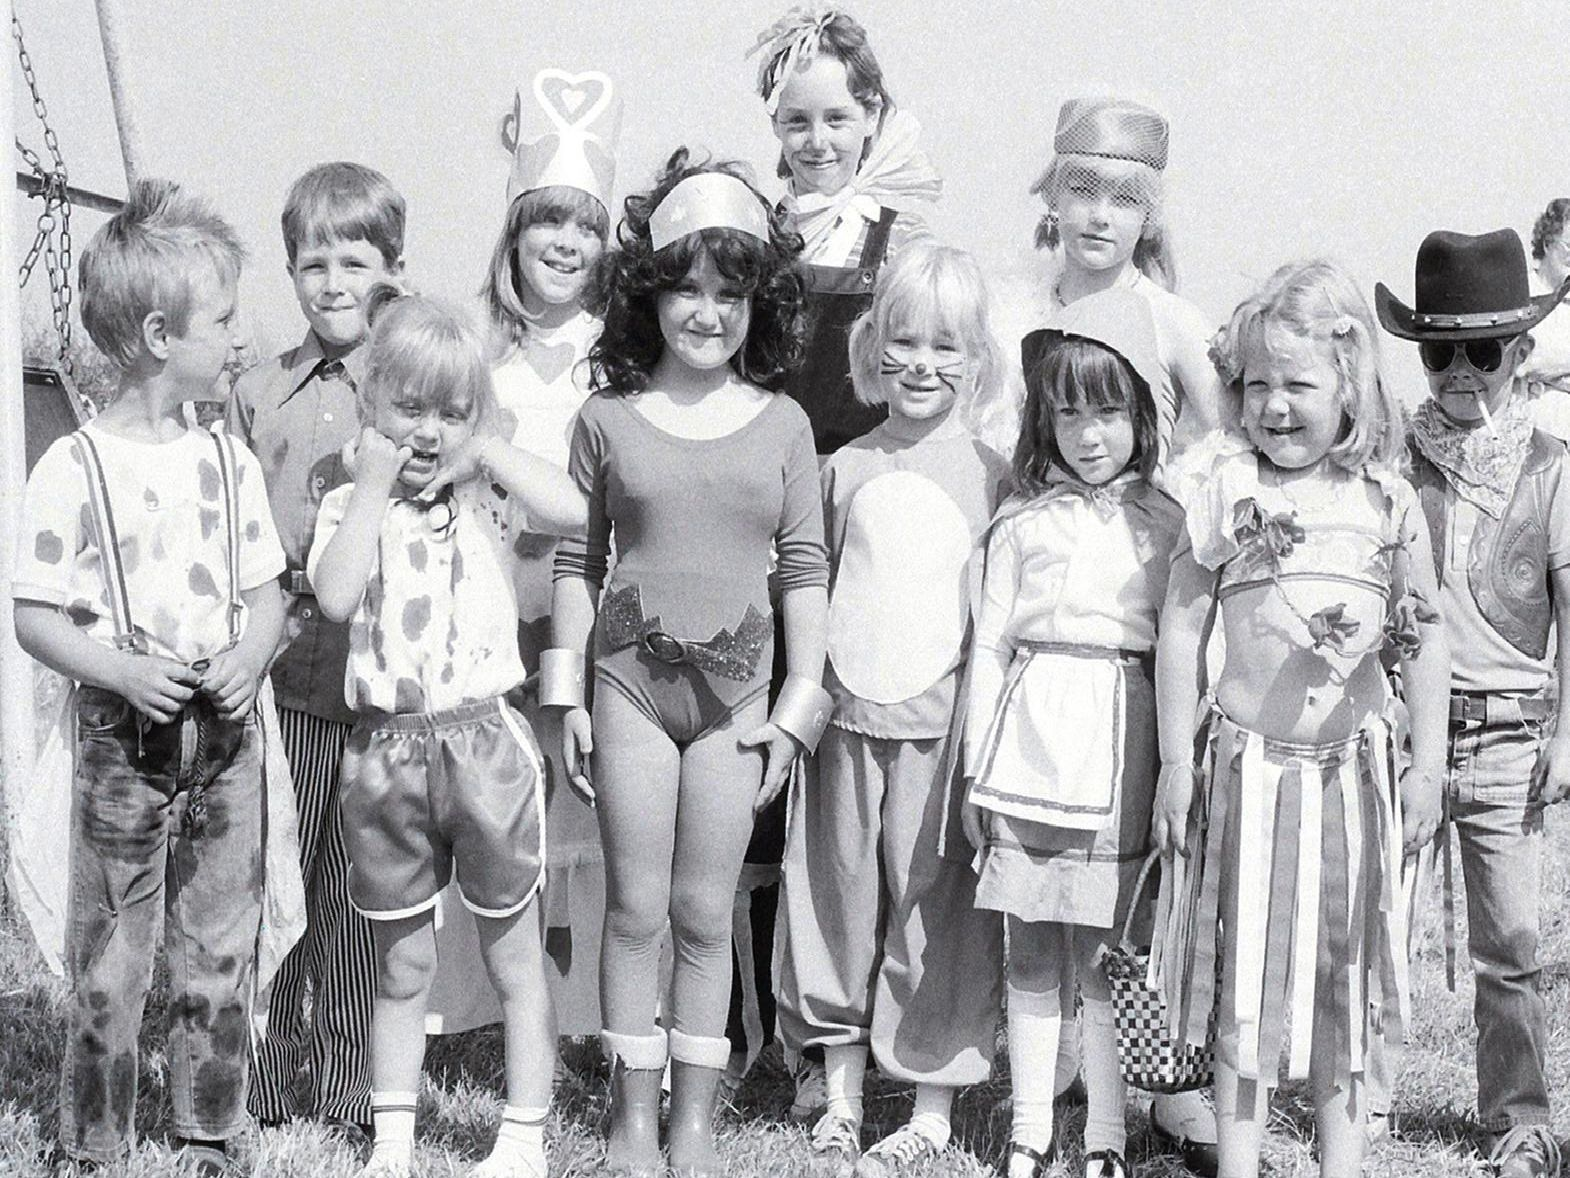 1981: These children are all dressed up ready for a street party in Blidworth to celebrate the wedding of Prince Charles and Diana. Are you on this picture?